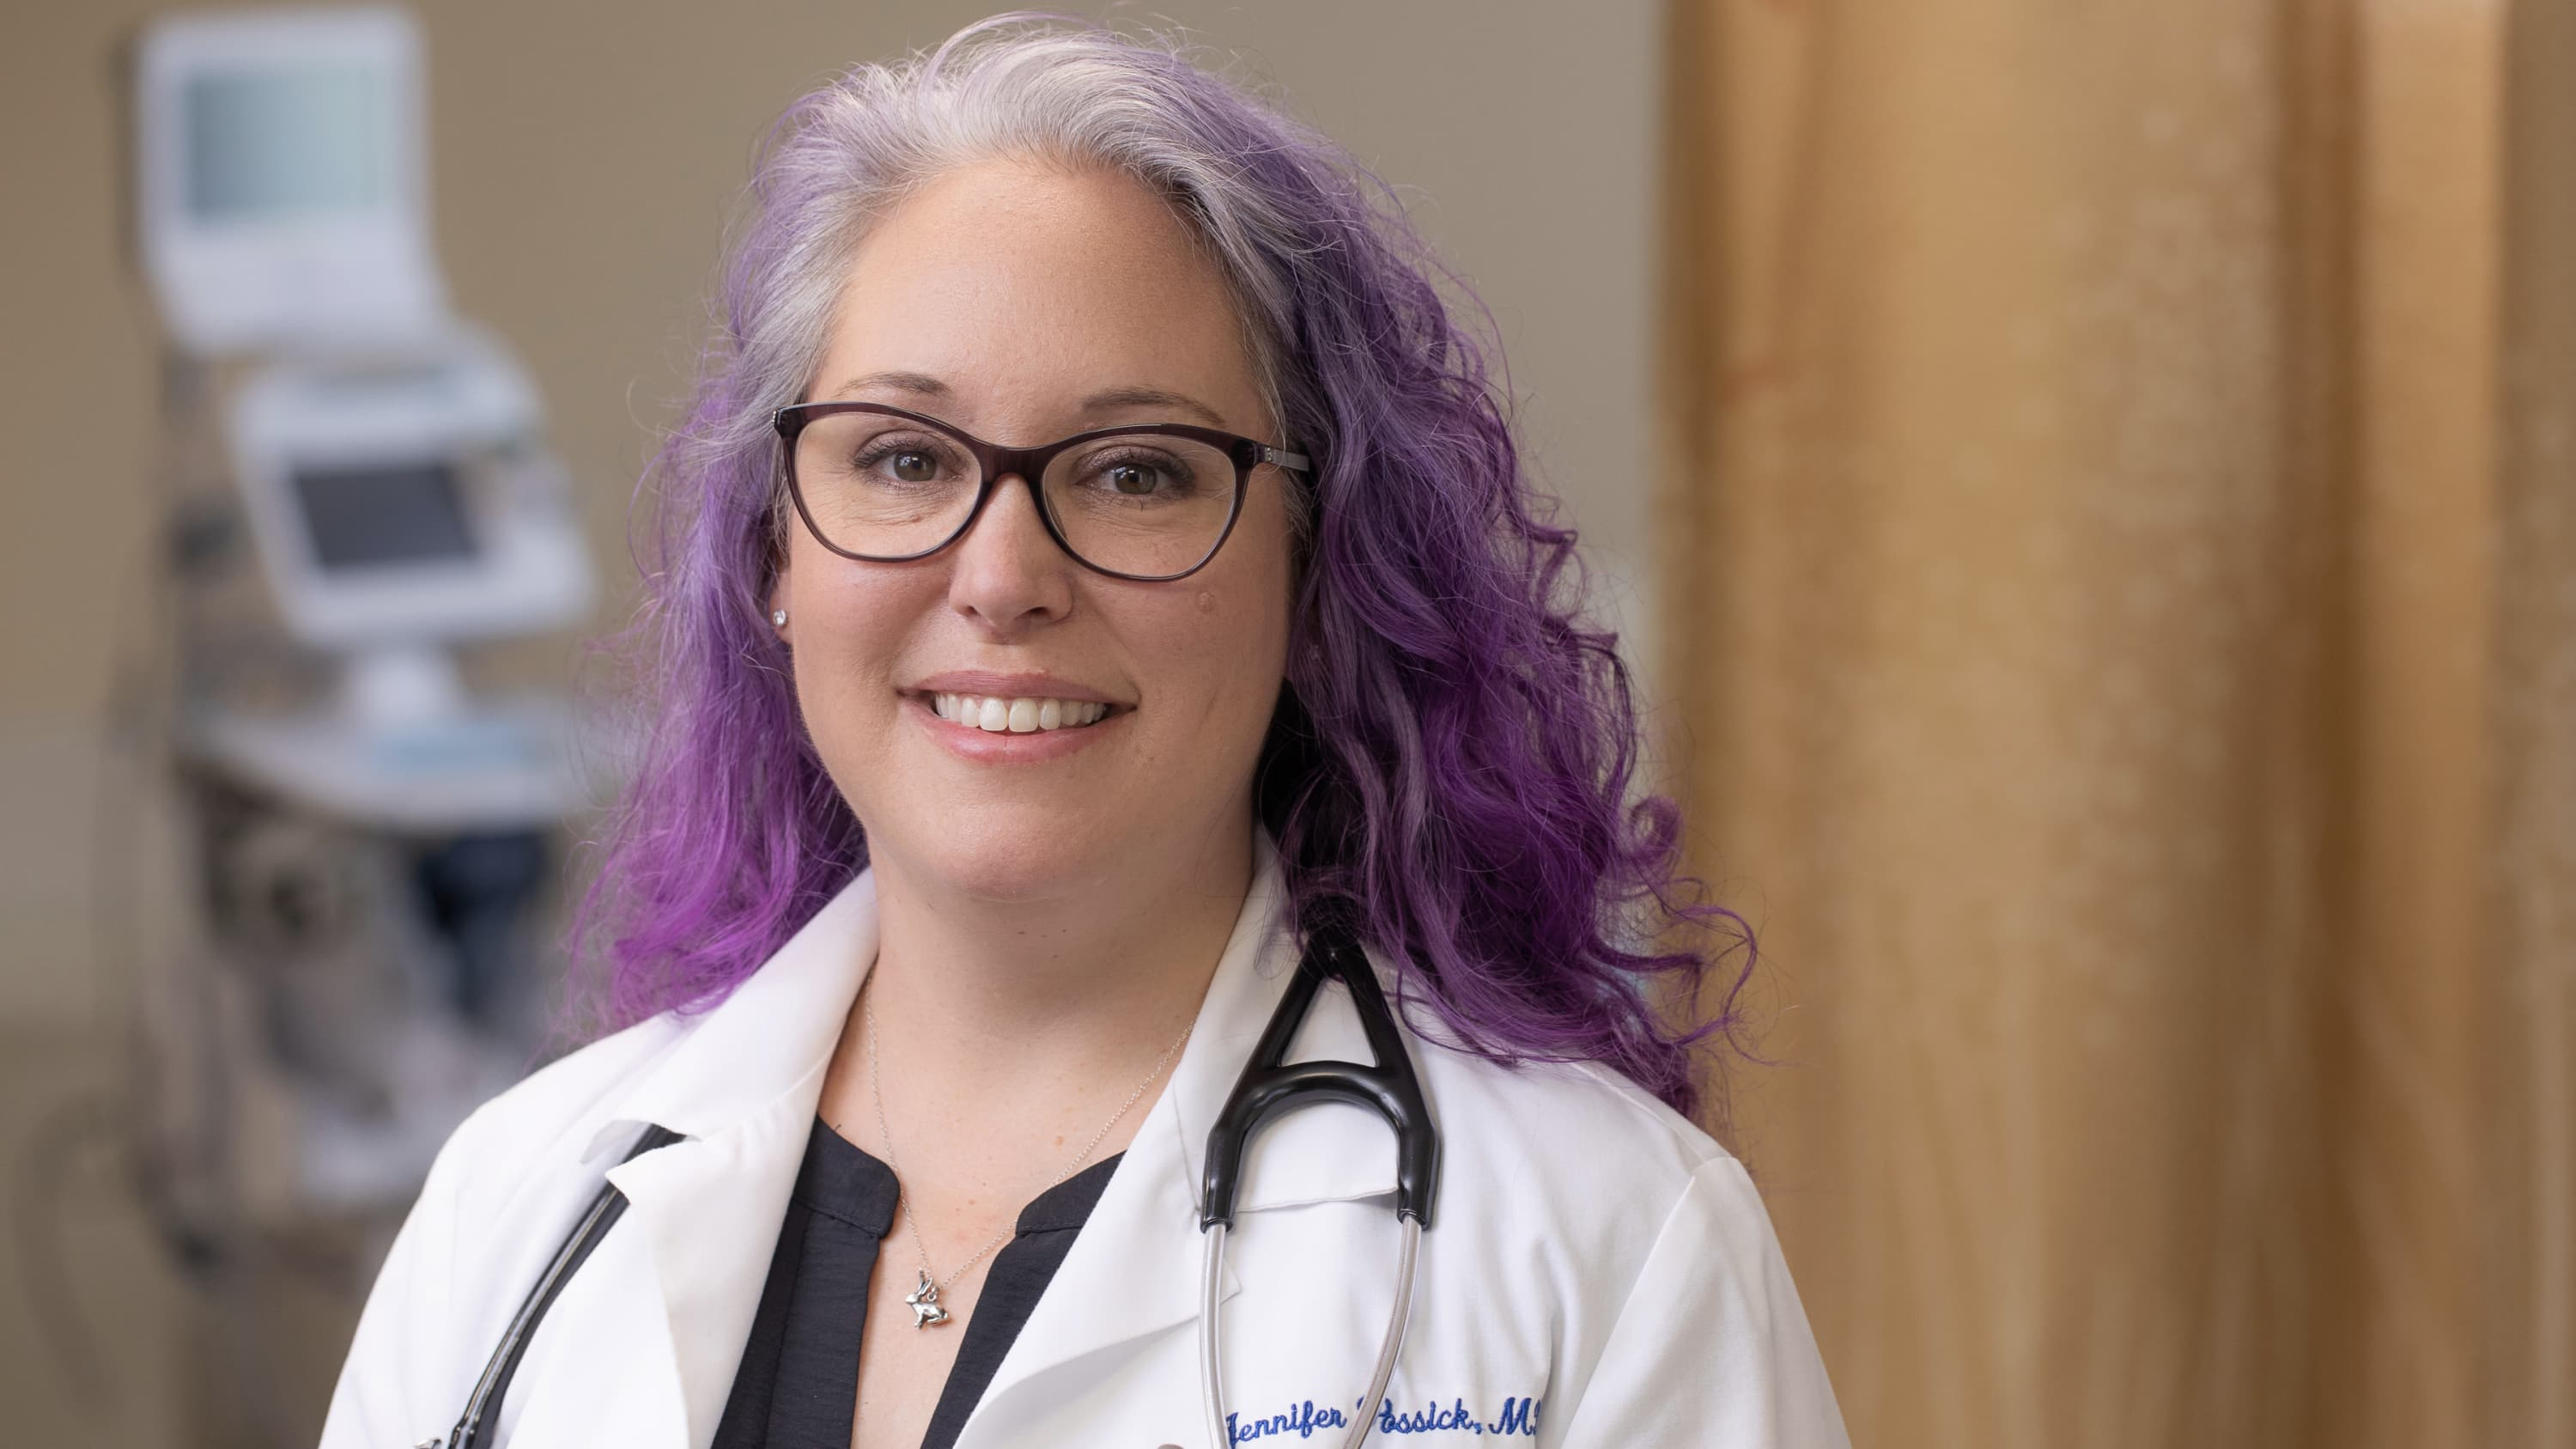 Jennifer Possick, MD, who started the first multidisciplinary post-COVID-19 recovery clinic in Connecticut